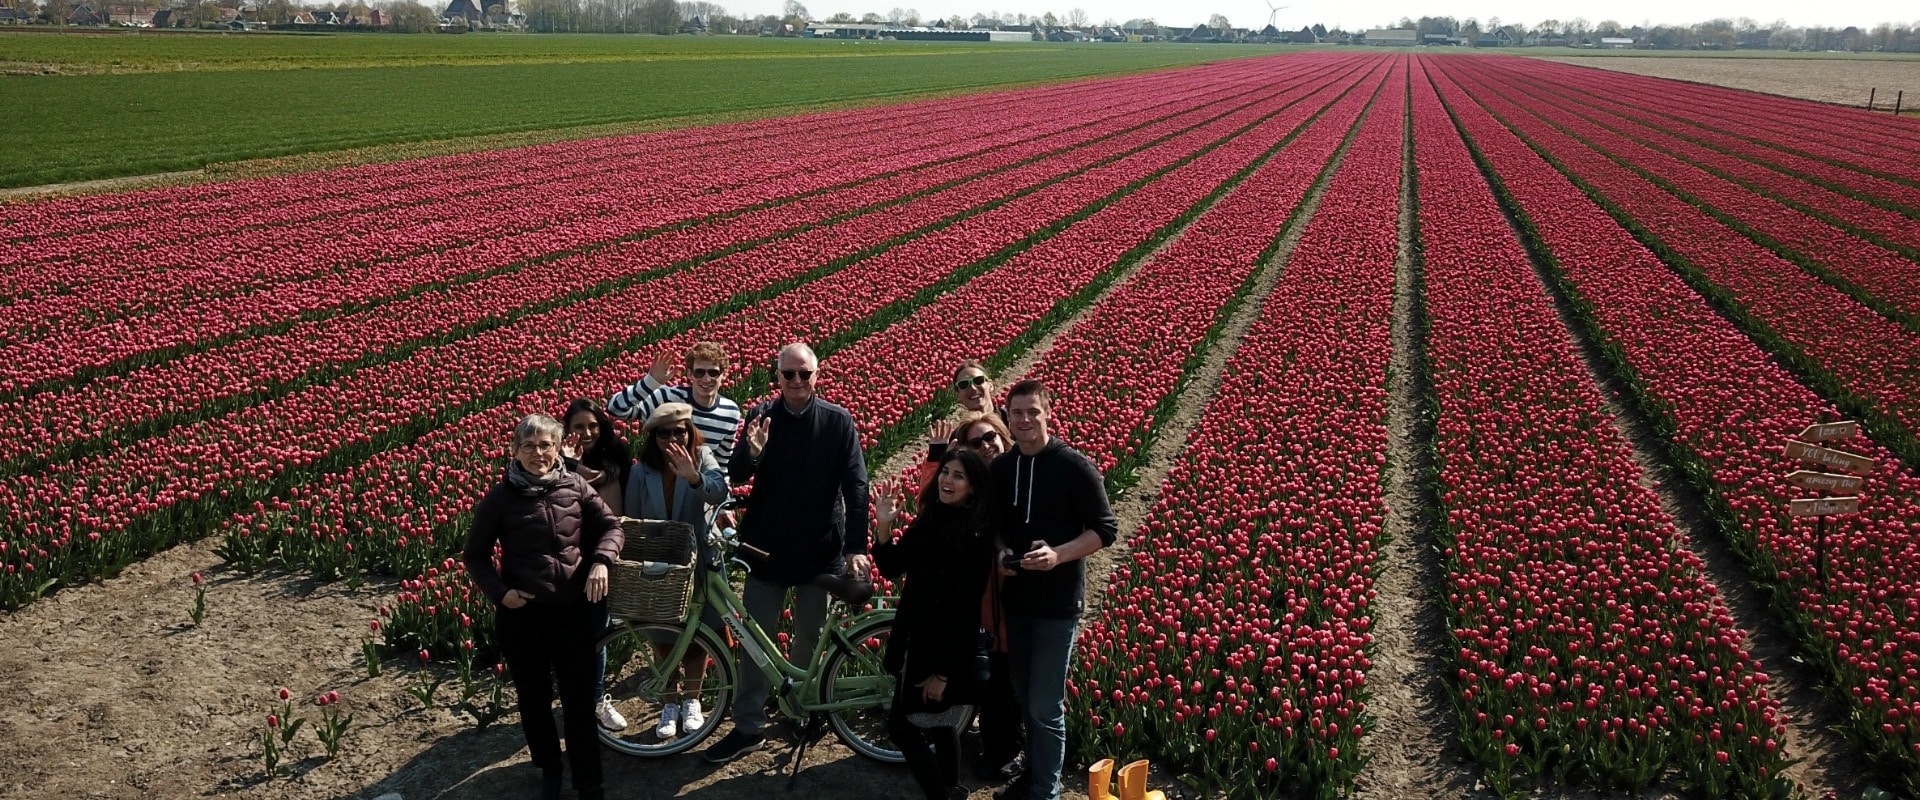 Tulip private tour at Tulip Tours Holland in Venhuizen